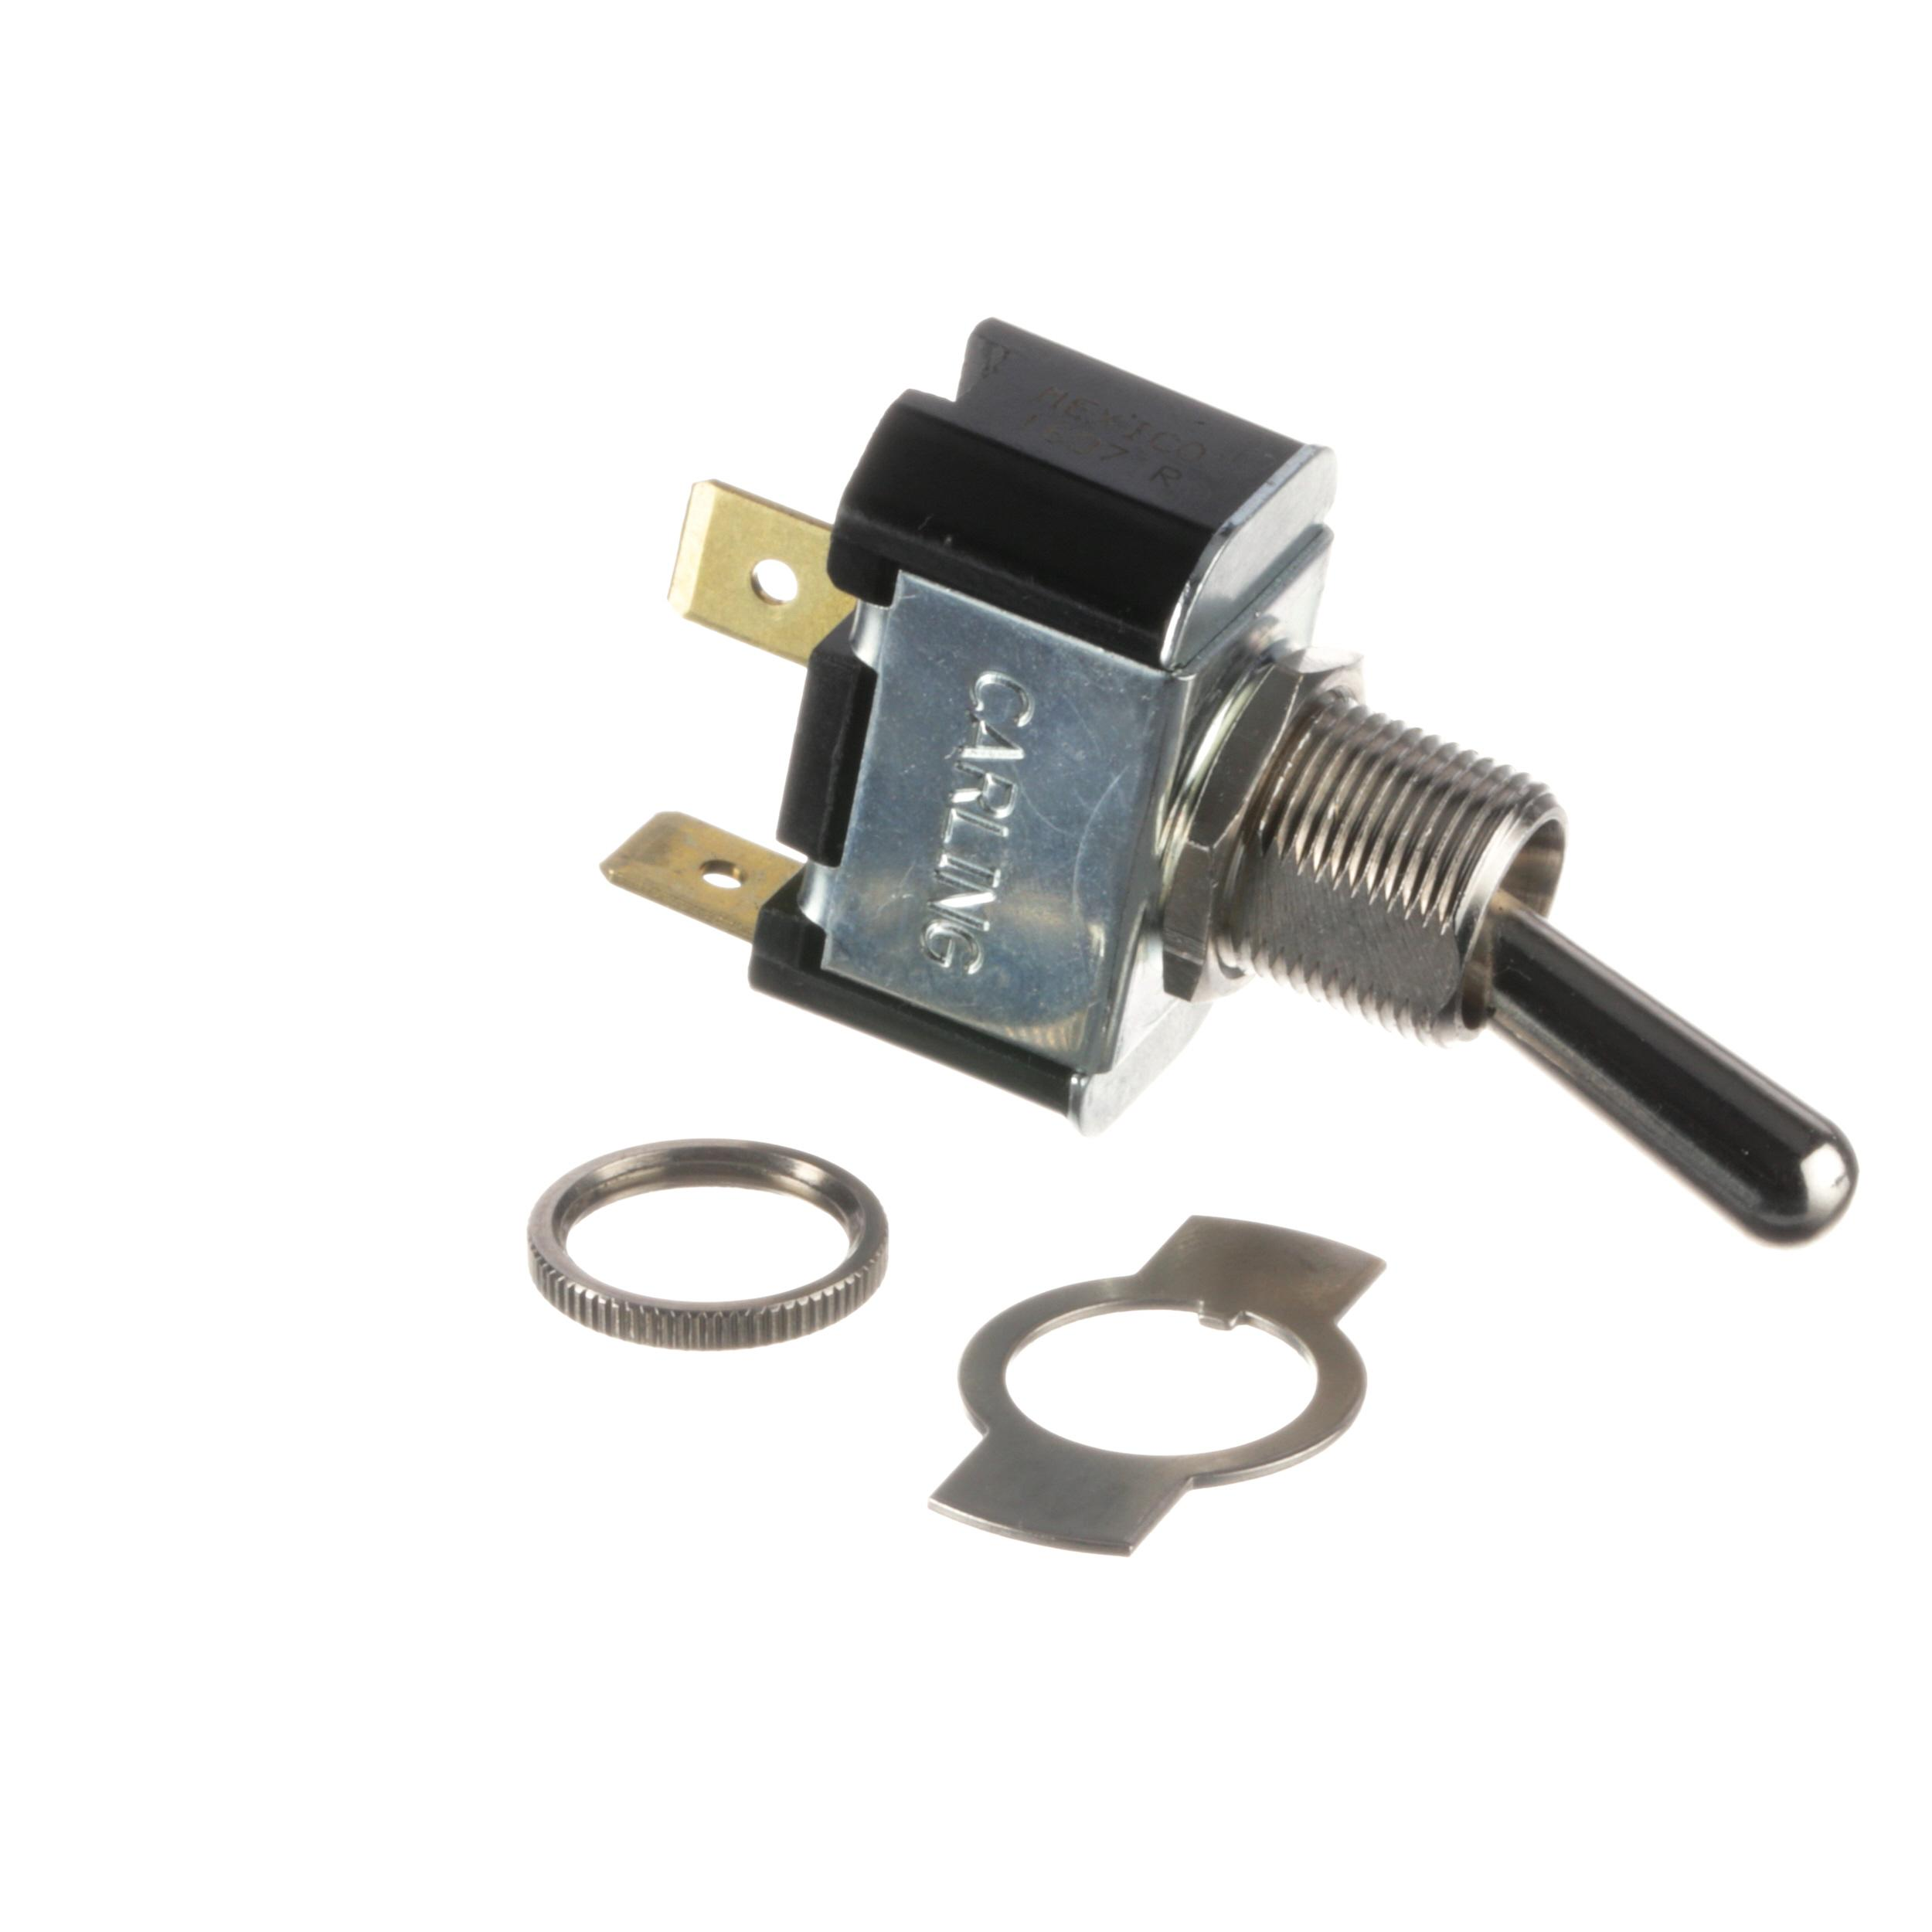 Air Toggle Switch : Marshall air toggle switch part